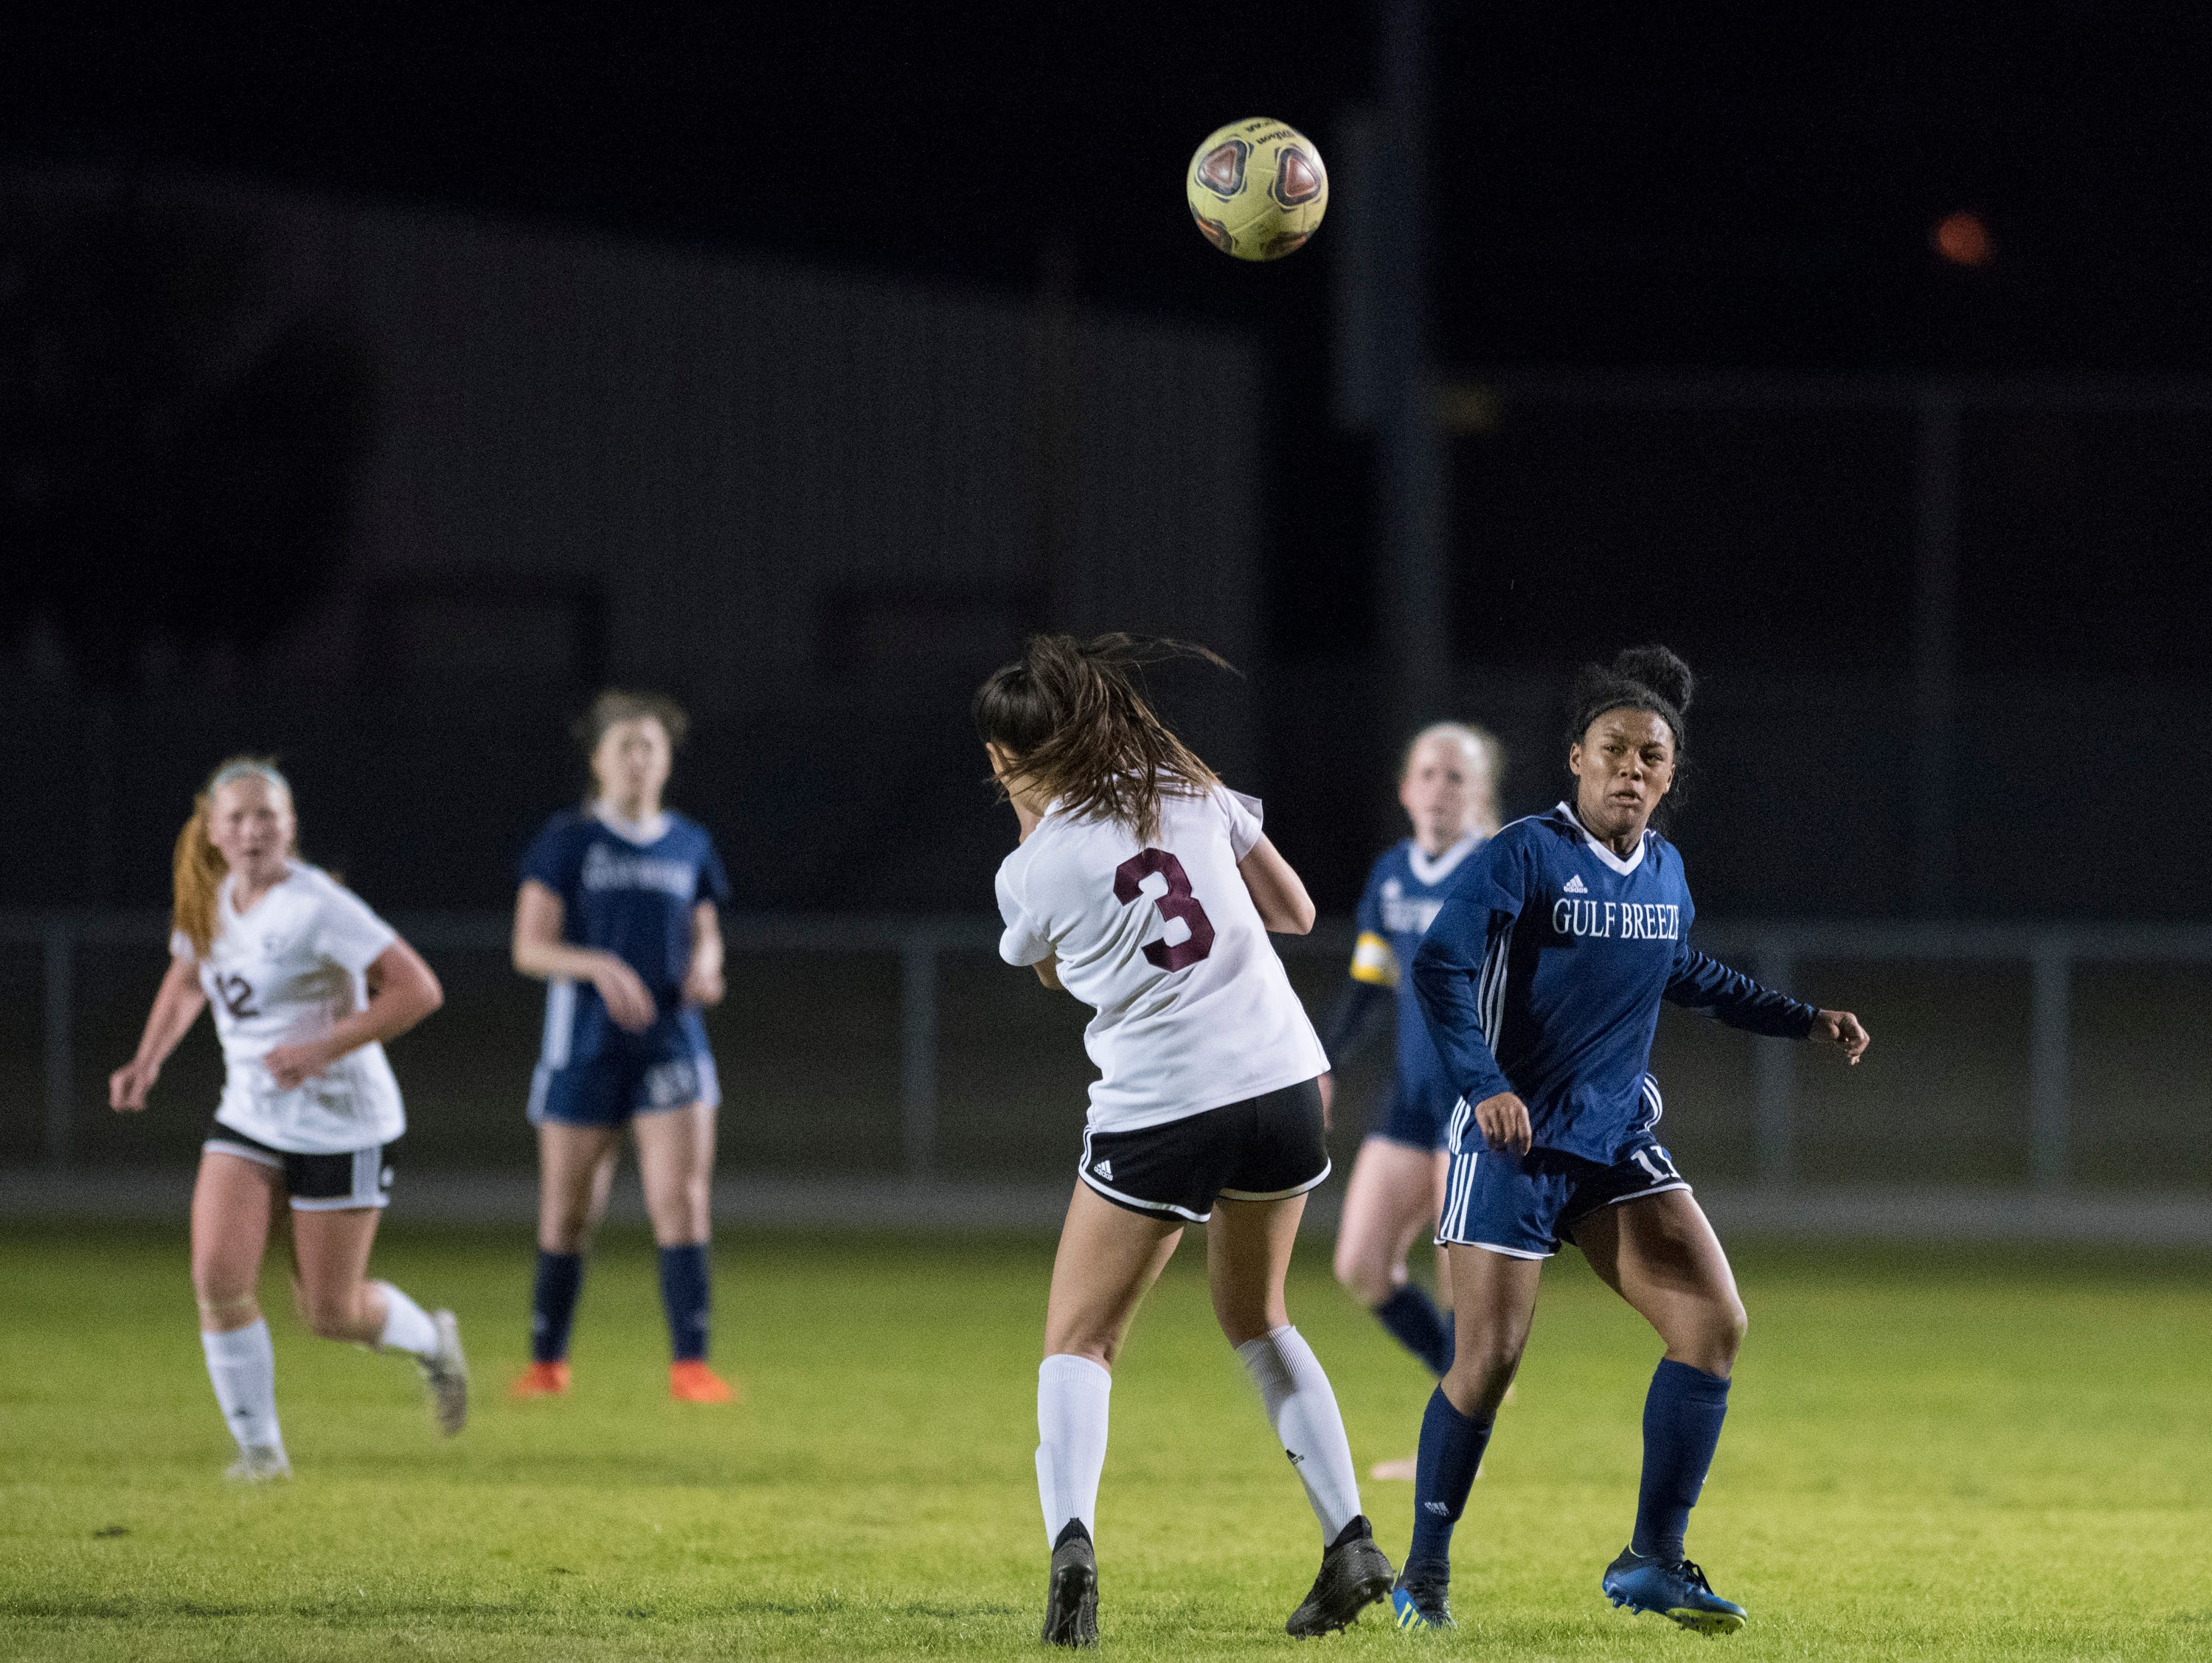 Mya Swinton (11) heads the ball past Brayden Thomas (3) during the Niceville vs Gulf Breeze soccer game at Gulf Breeze High School on Thursday, January 10, 2019.